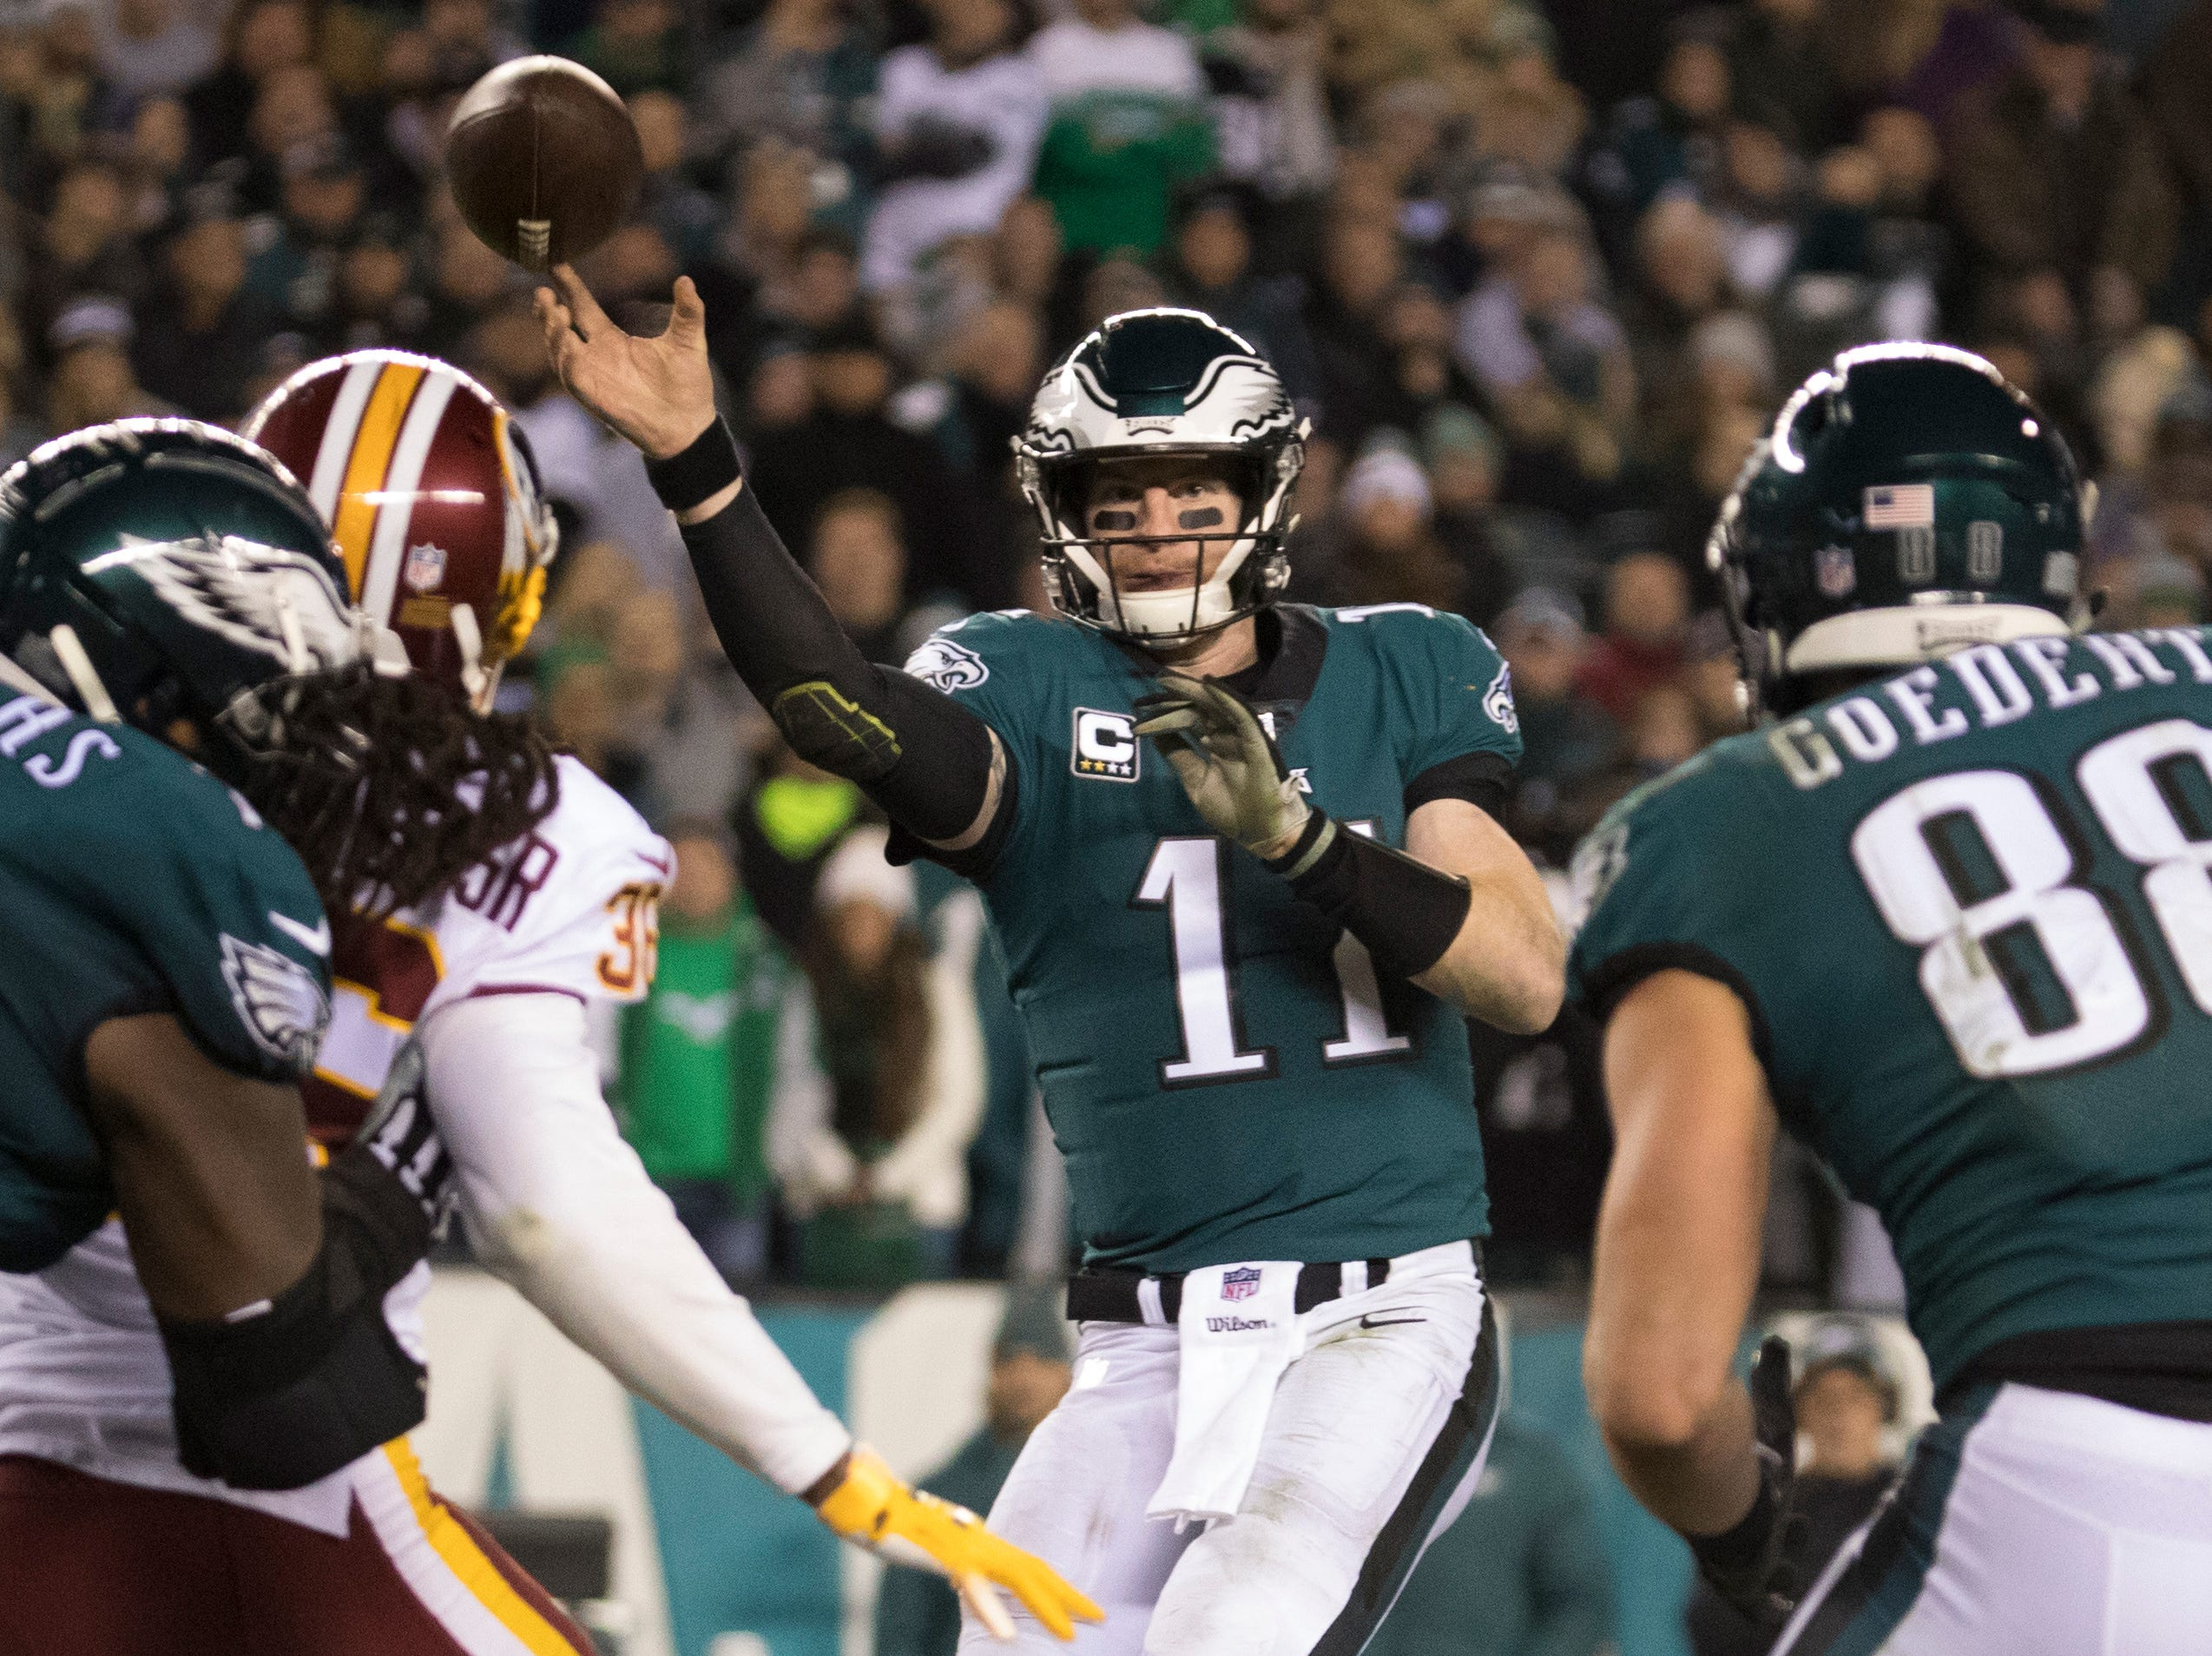 Eagles' Carson Wentz (11) throws towards the sideline Monday night against the Redskins